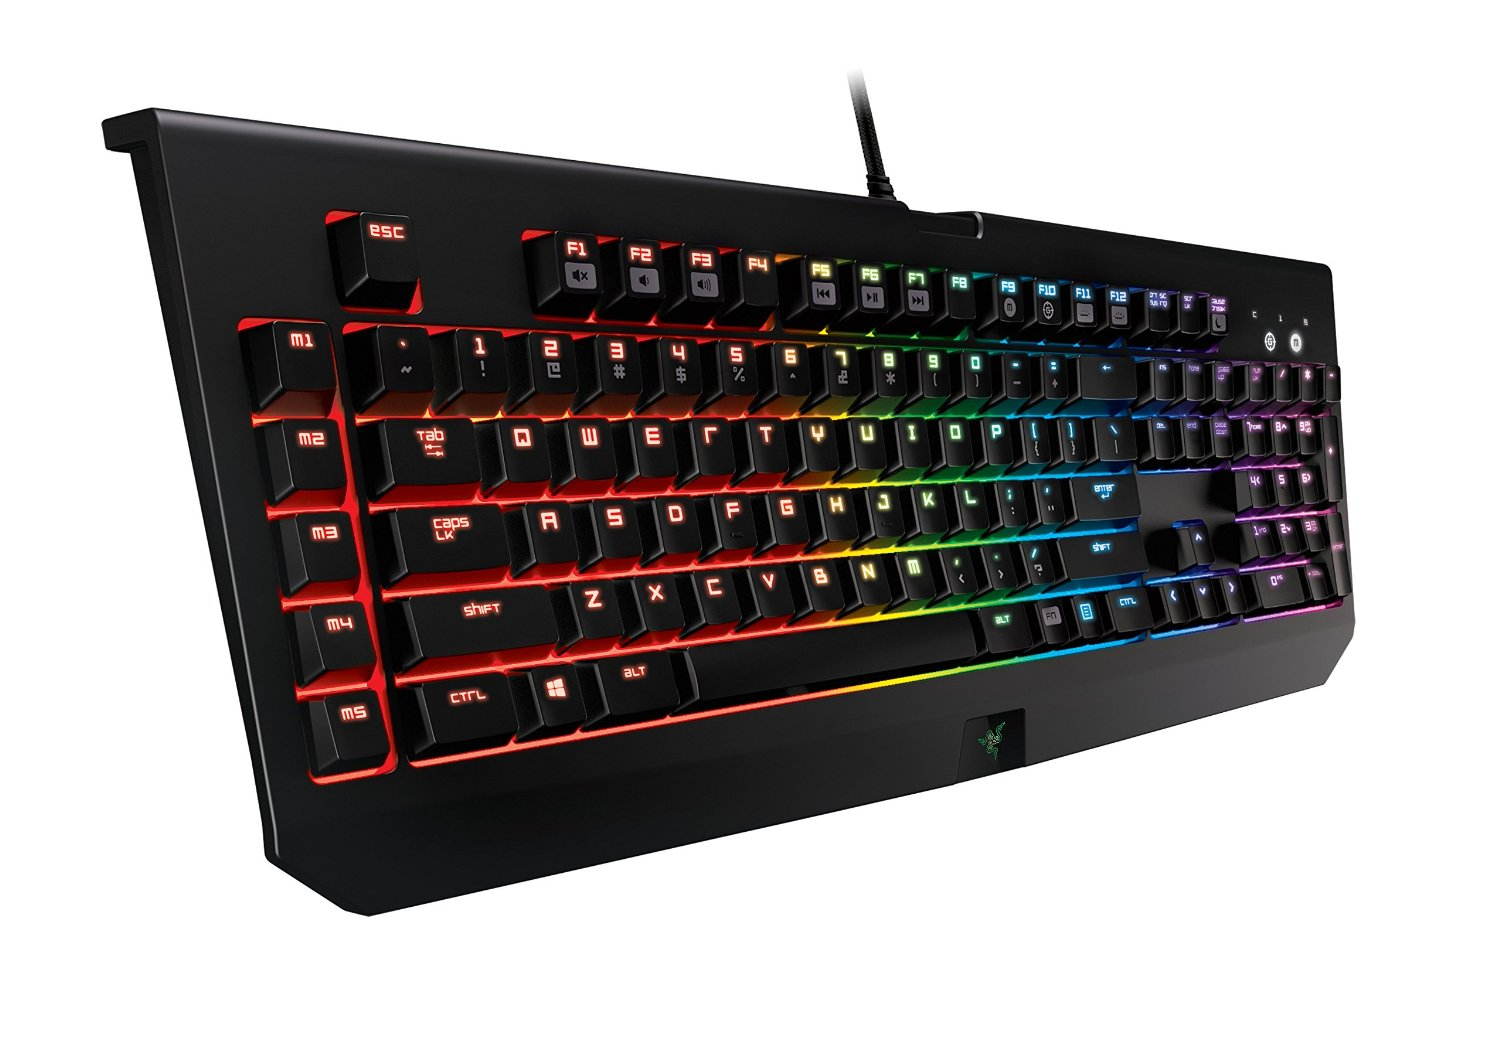 Razer BlackWidow Chroma Clicky Mechanical Gaming Keyboard - Fully Programmable and 5 Macro Keys - GAMING GIFT IDEAS - THE ULTIMATE GIFT LIST FOR MODERN MEN